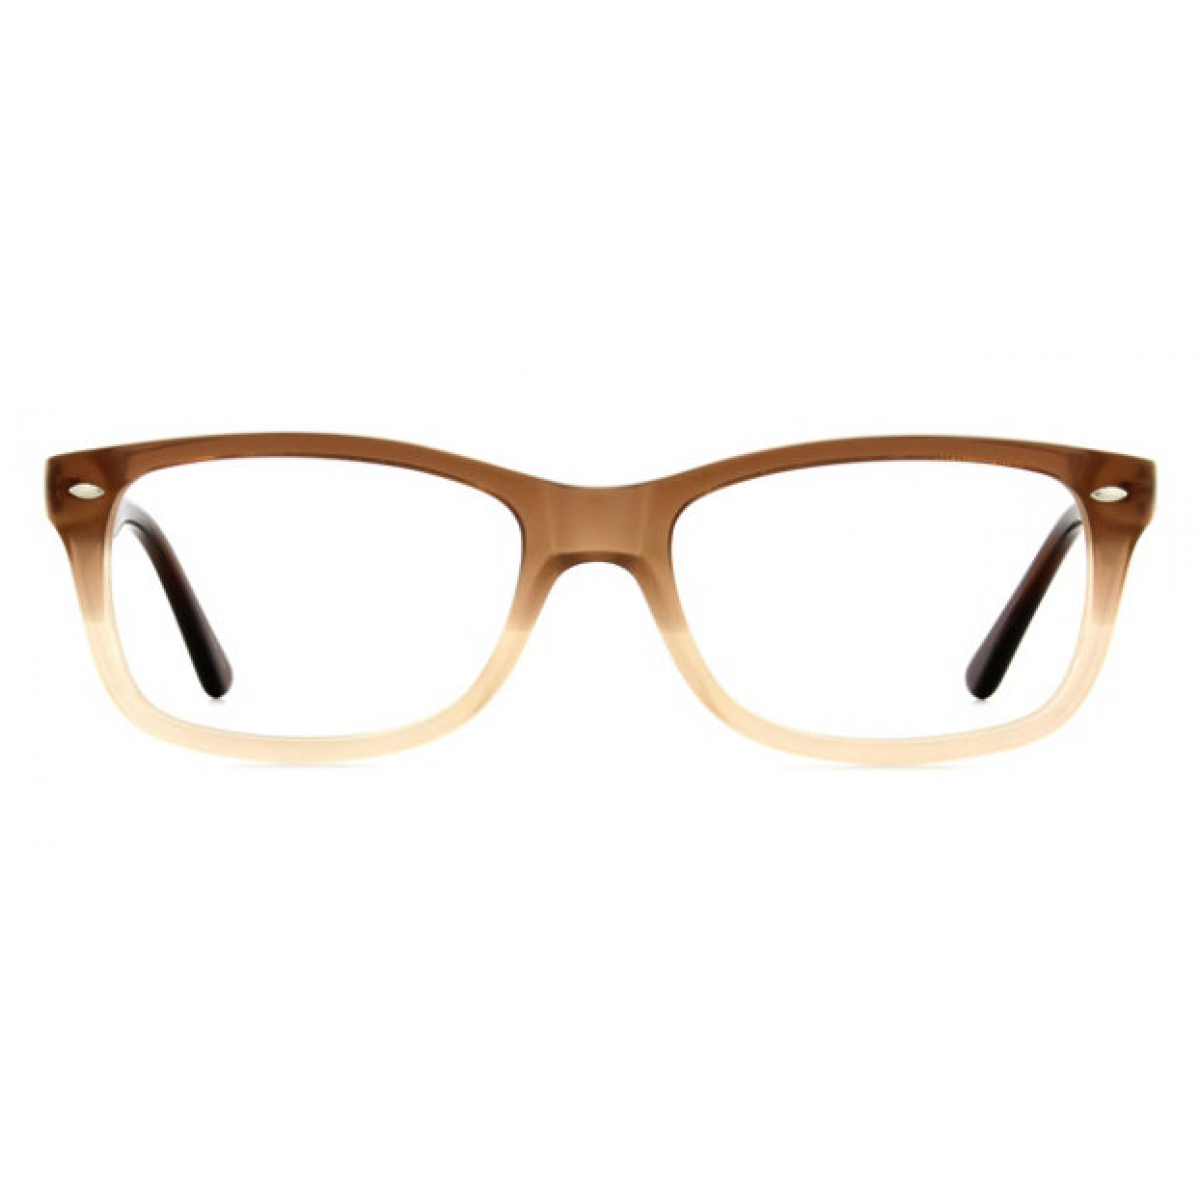 06f265288 Brown/Smoke Hemingway Eyeglasses - Eyeglass.com #womens #eyeglasses #frames